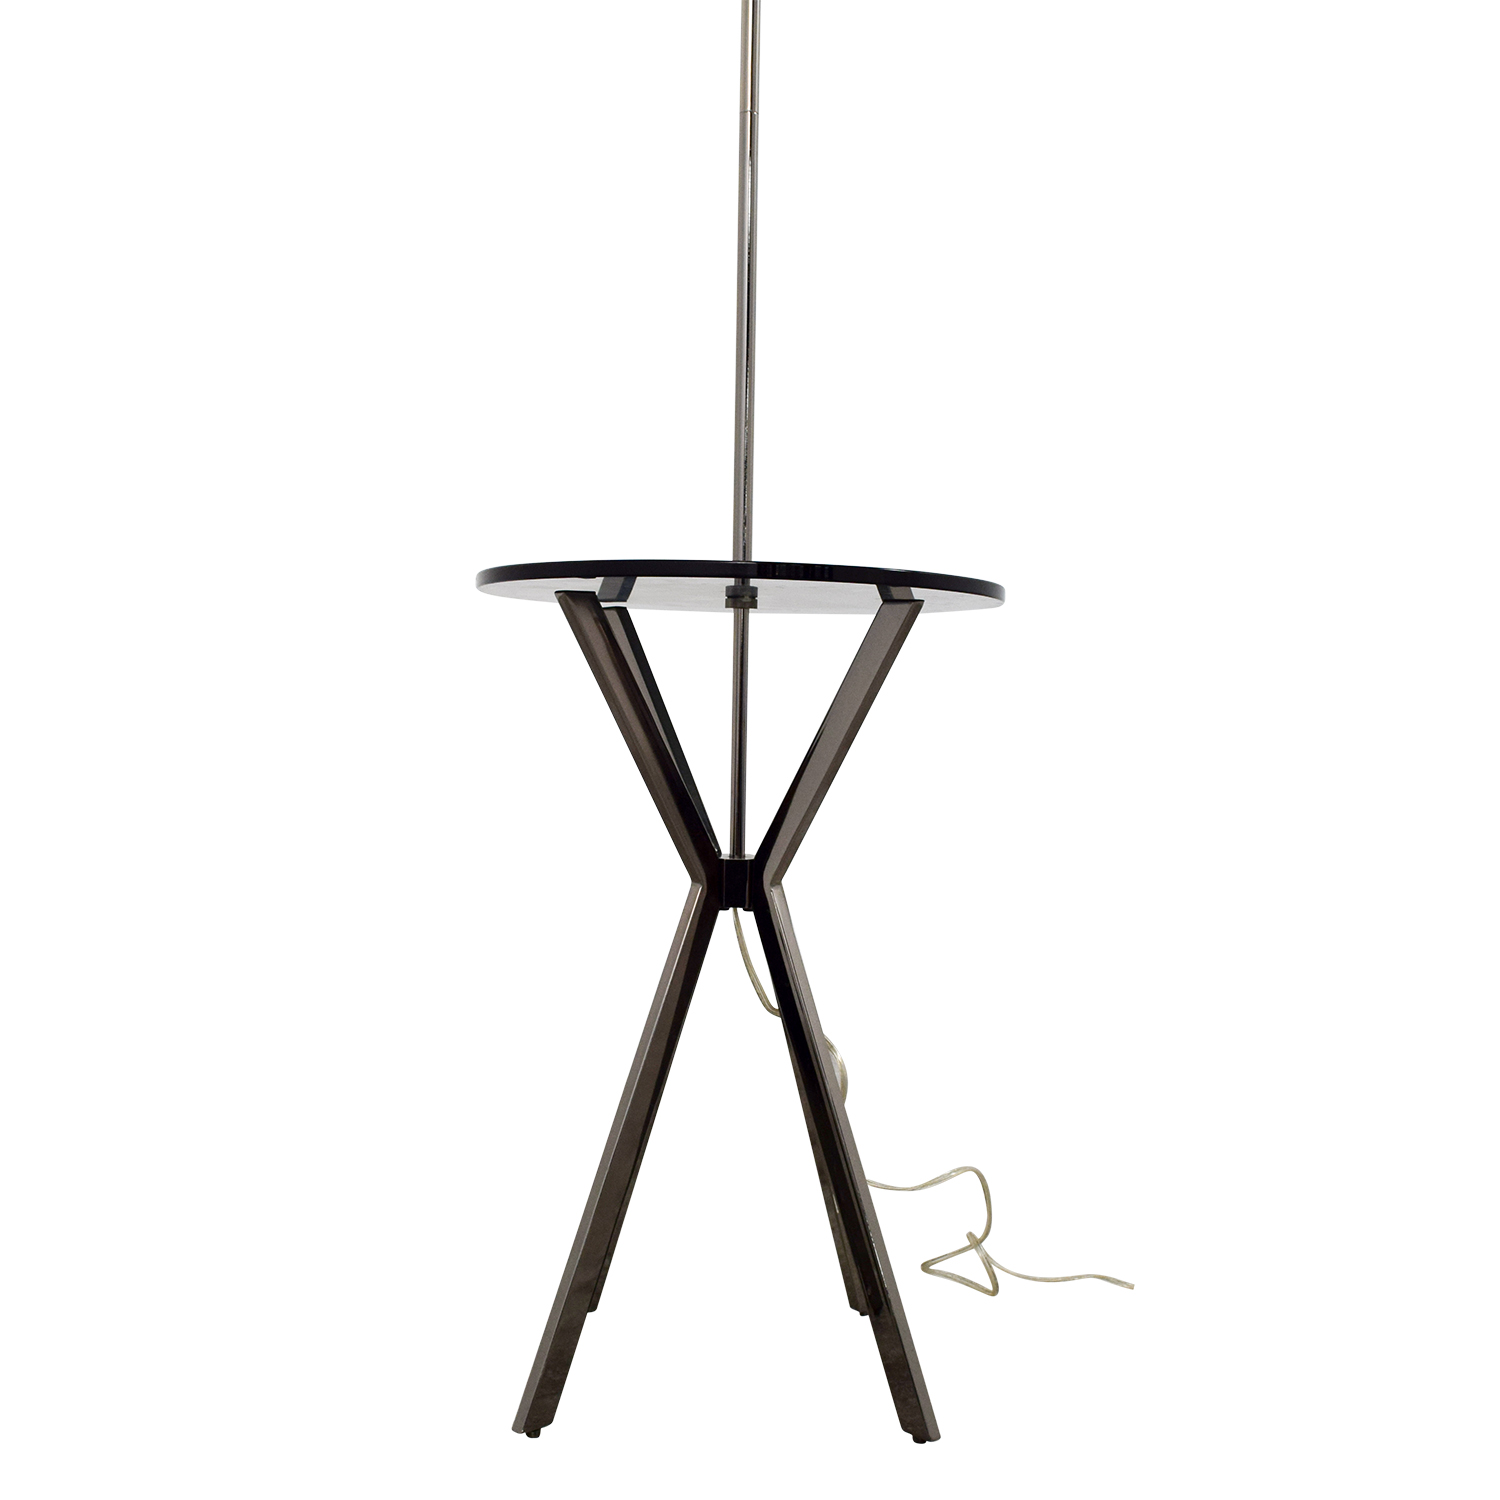 ... West Elm West Elm Floor Lamp With Table Attached Discount ...